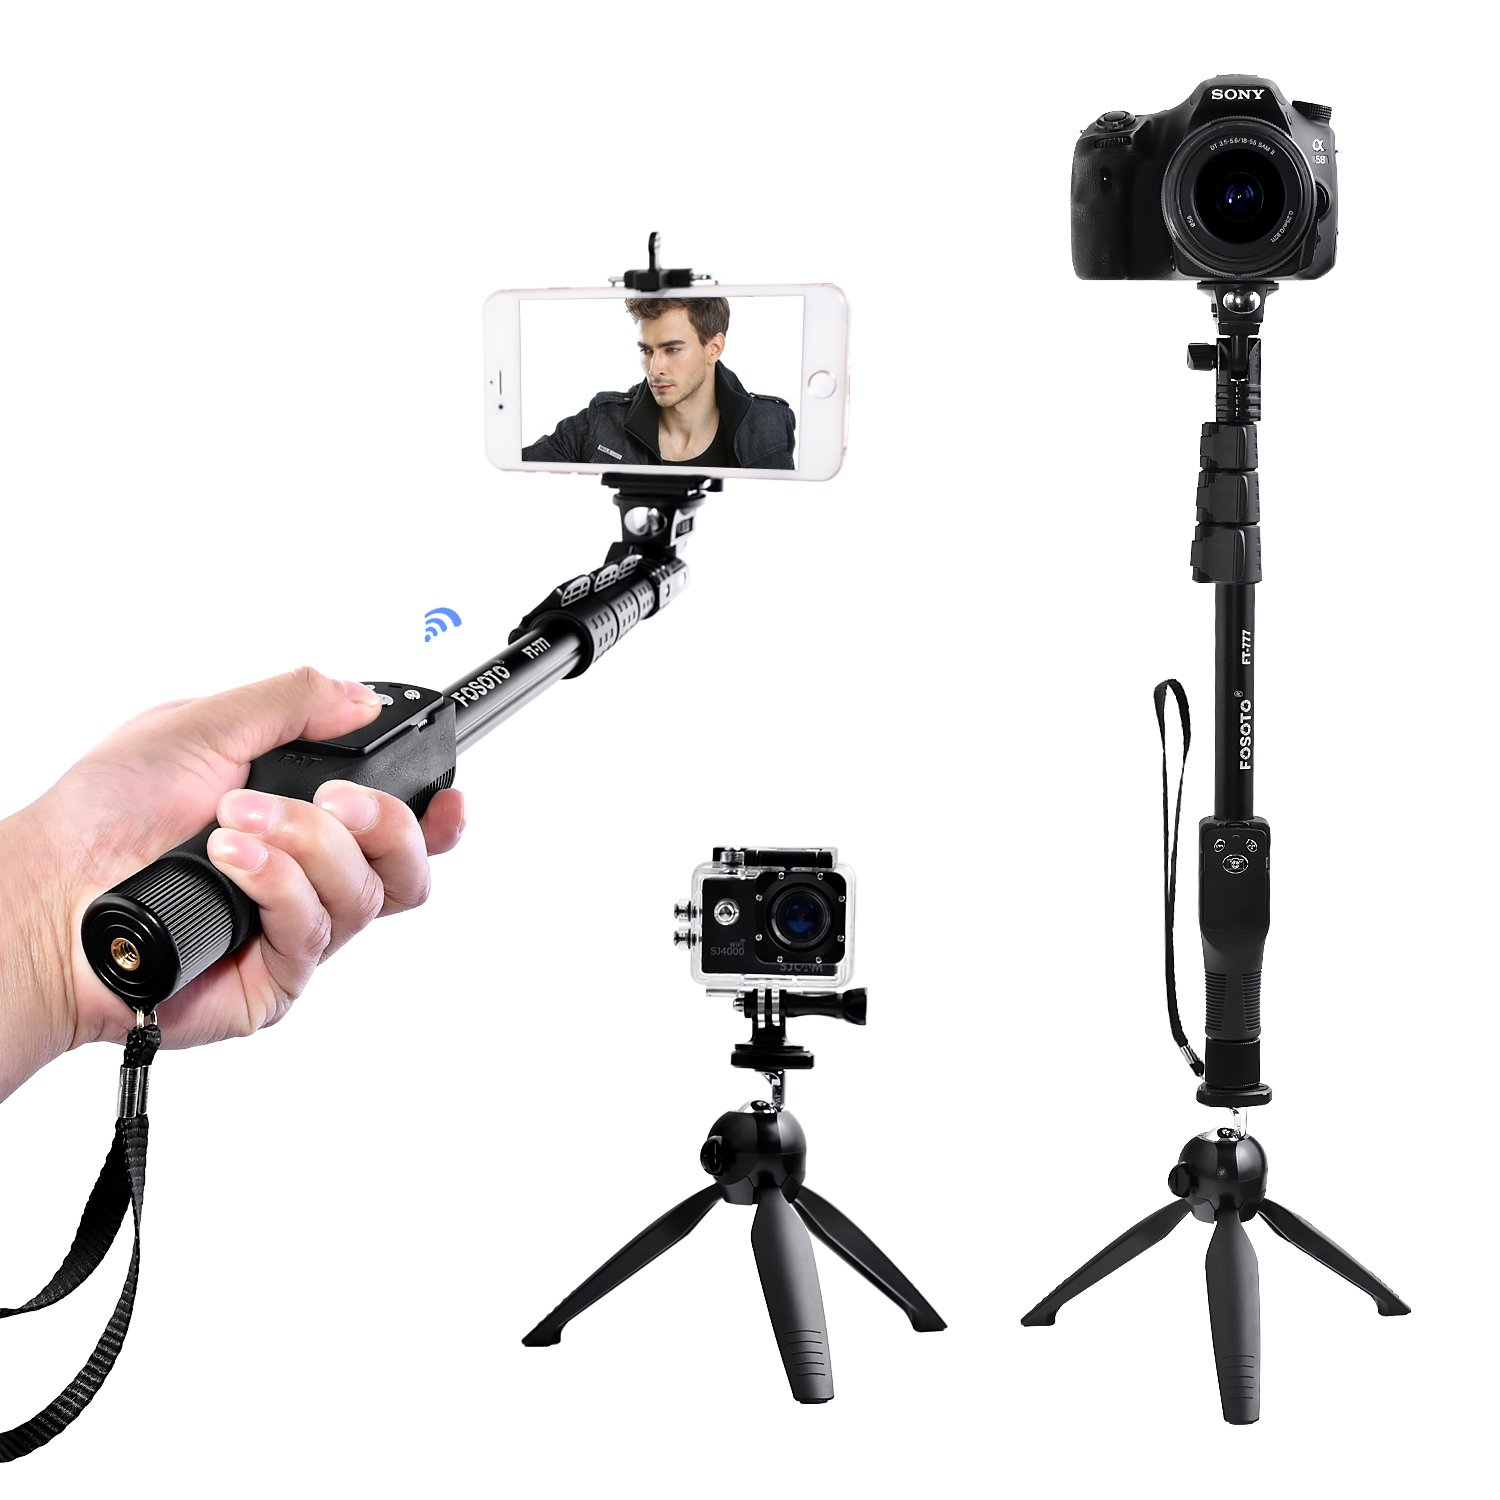 FOSOTO Selfie Stick Tripod with Bluetooth Remote for iphone X 8 7 6 Plus, Samsung Galaxy, Android, GoPro, Camera